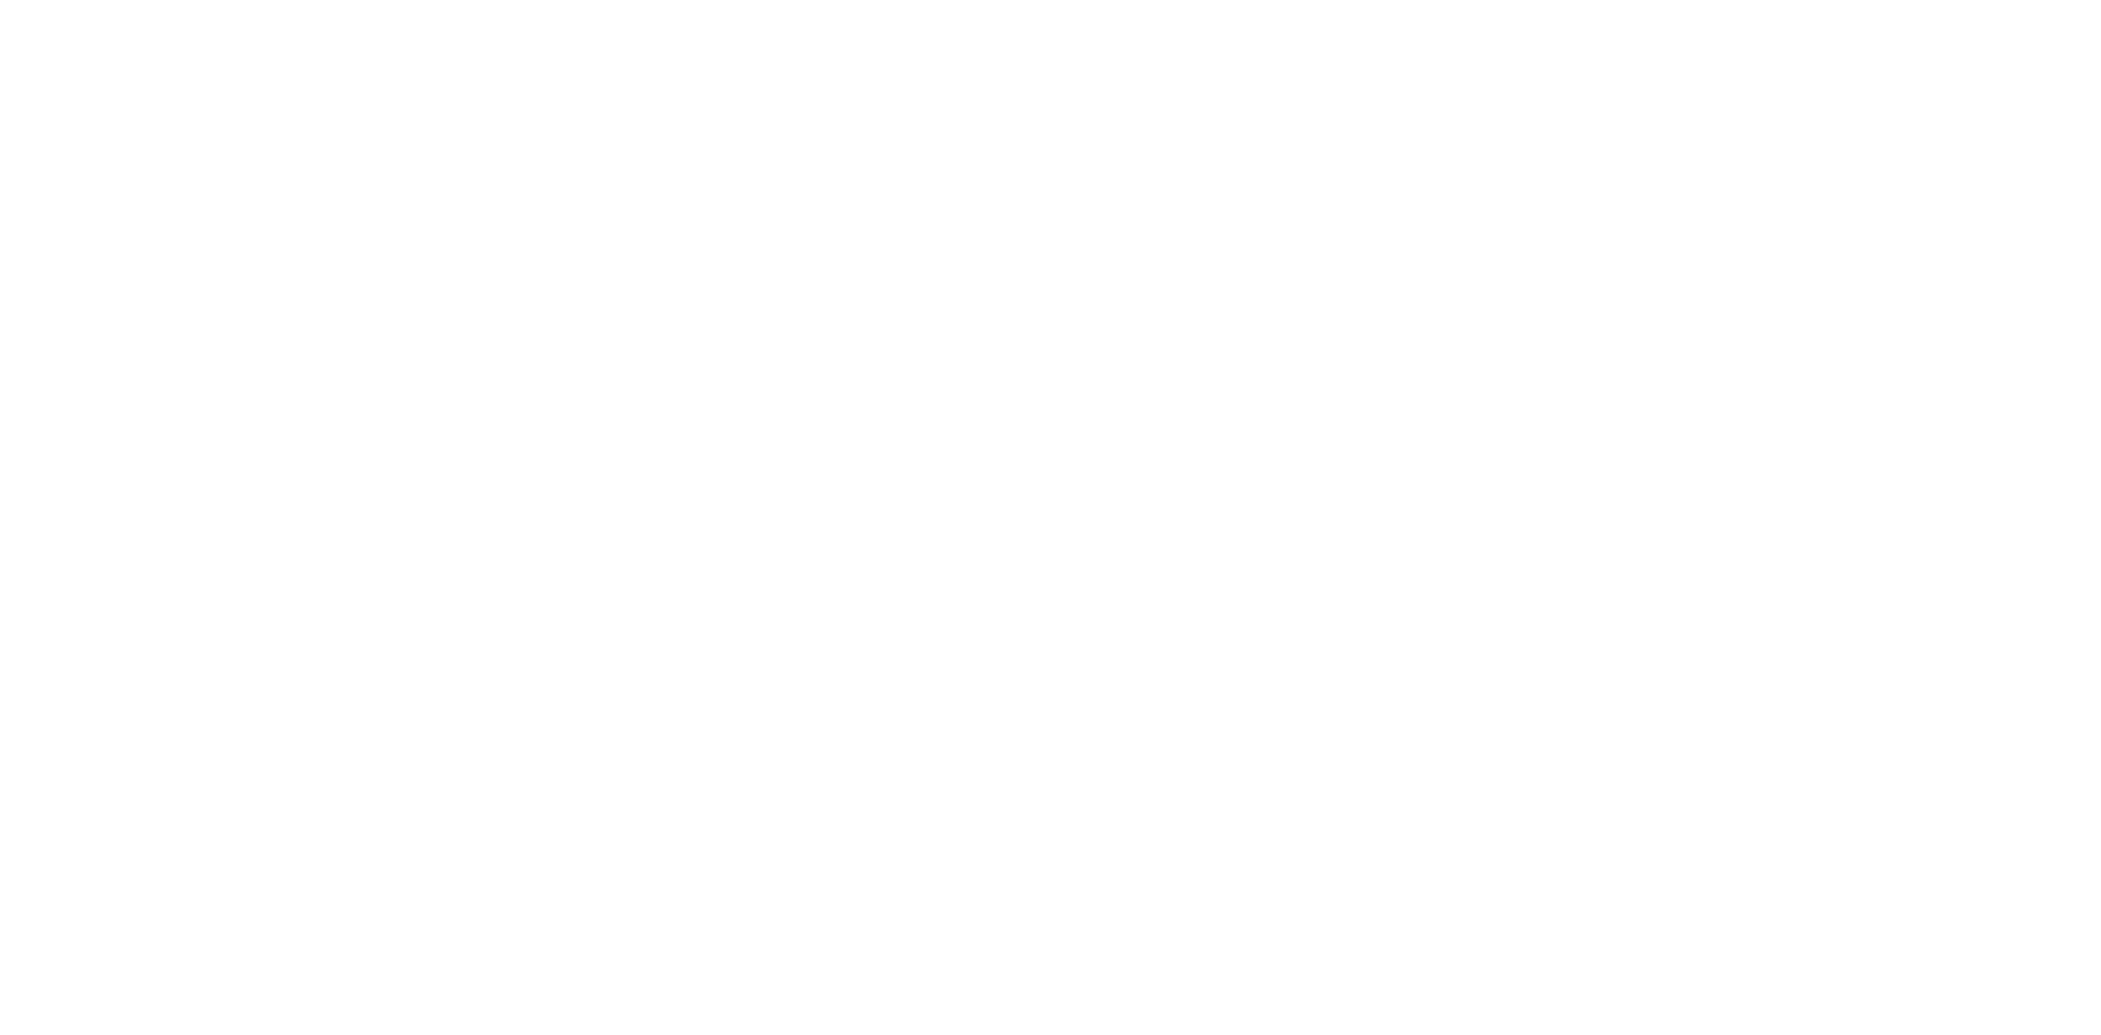 Northwest Straits Chapter Surfrider Foundation